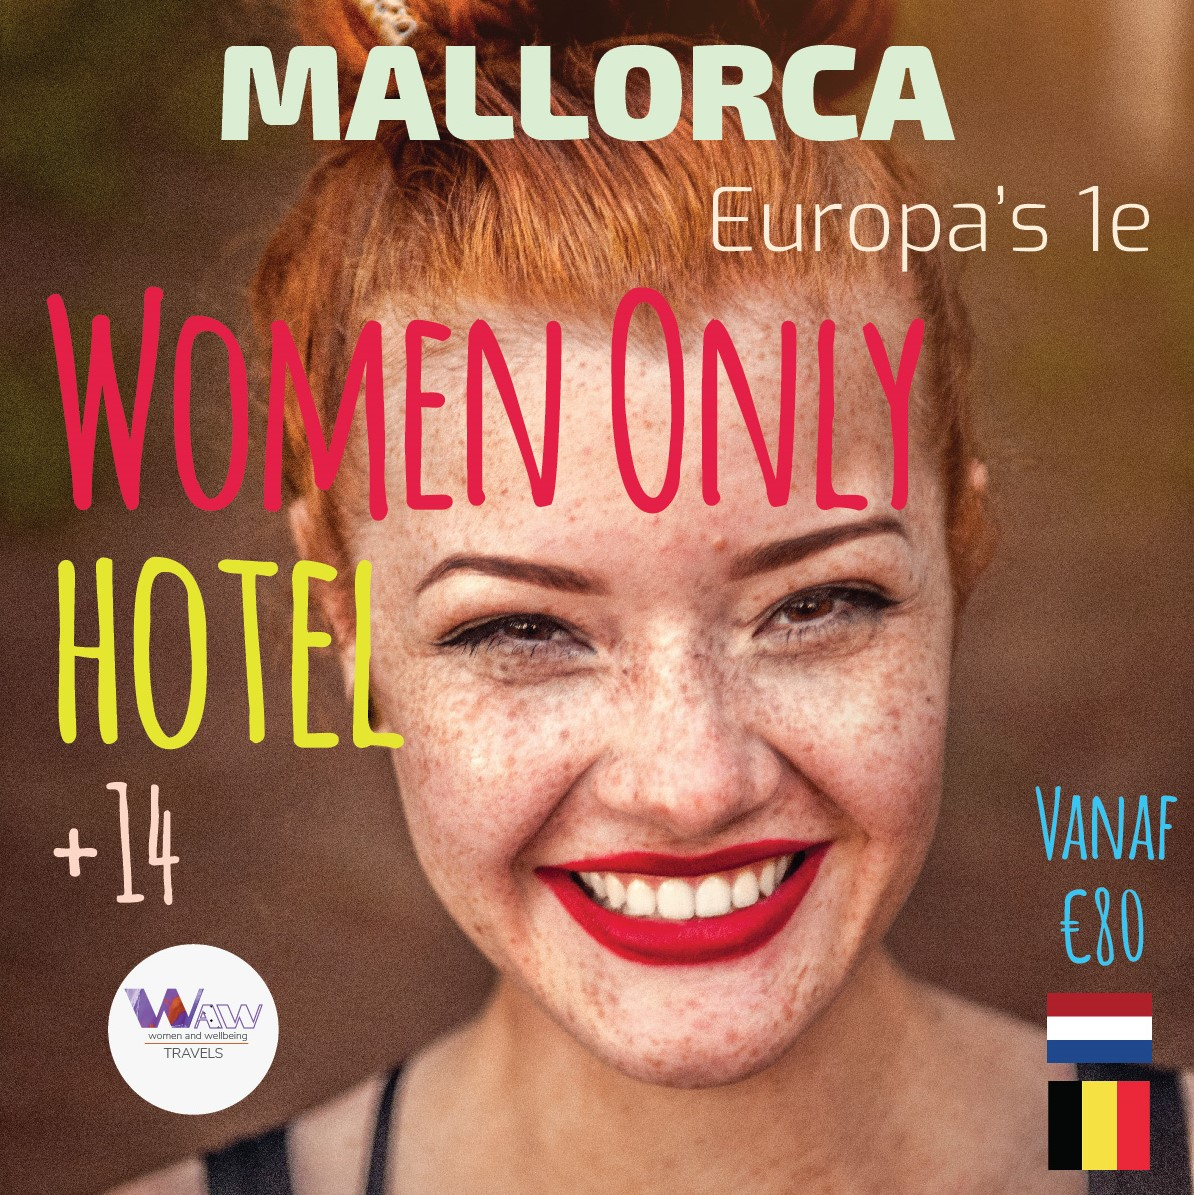 waw_travels_mallorca_woman_only_hotel_NL